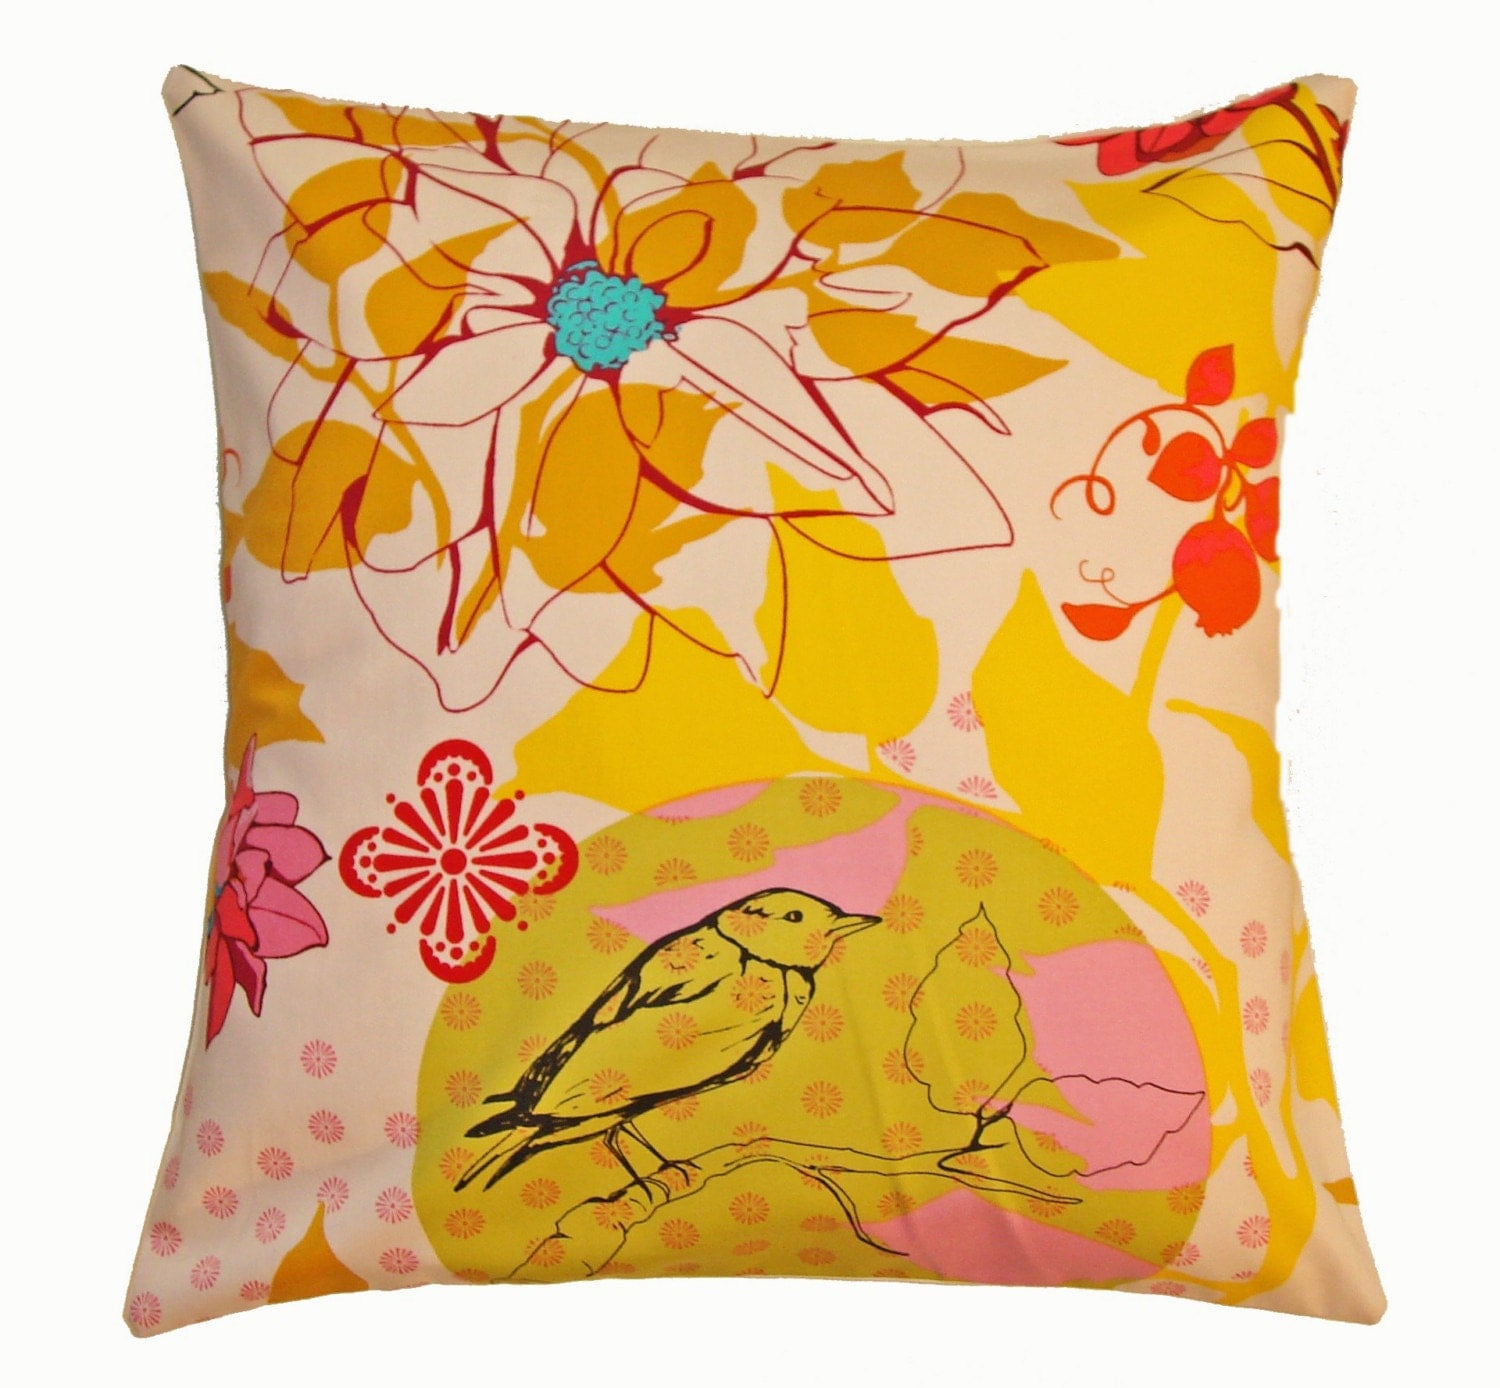 Throw Pillow 18X18 Removable cover sewn with Anna Maria